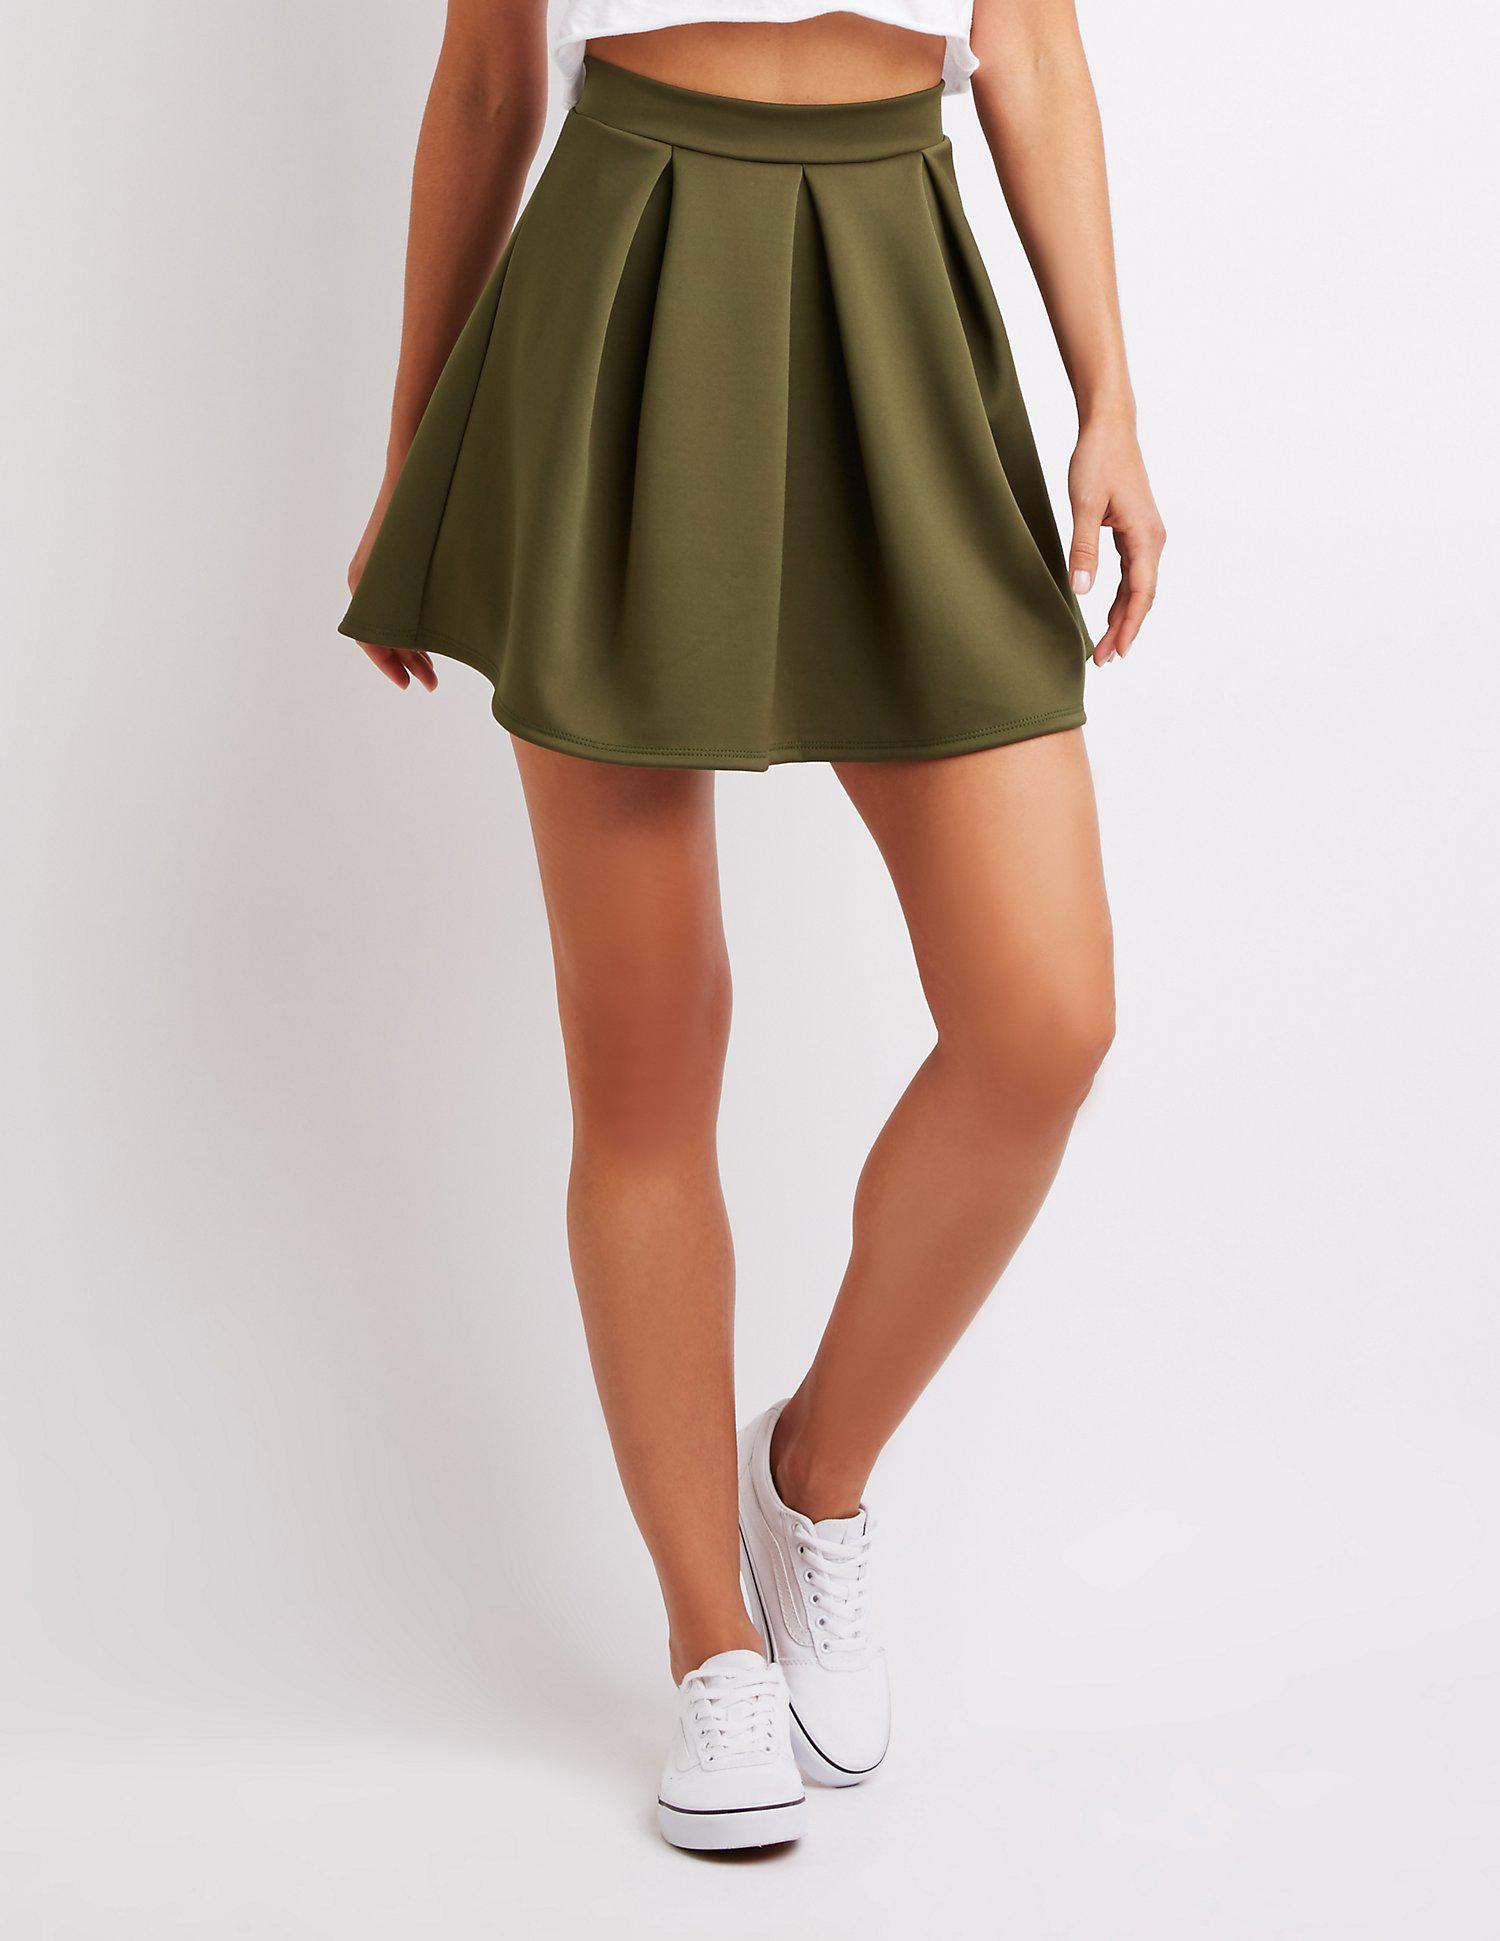 cb699b827a Lyst - Charlotte Russe Pleated Scuba Skater Skirt in Green - Save 30%